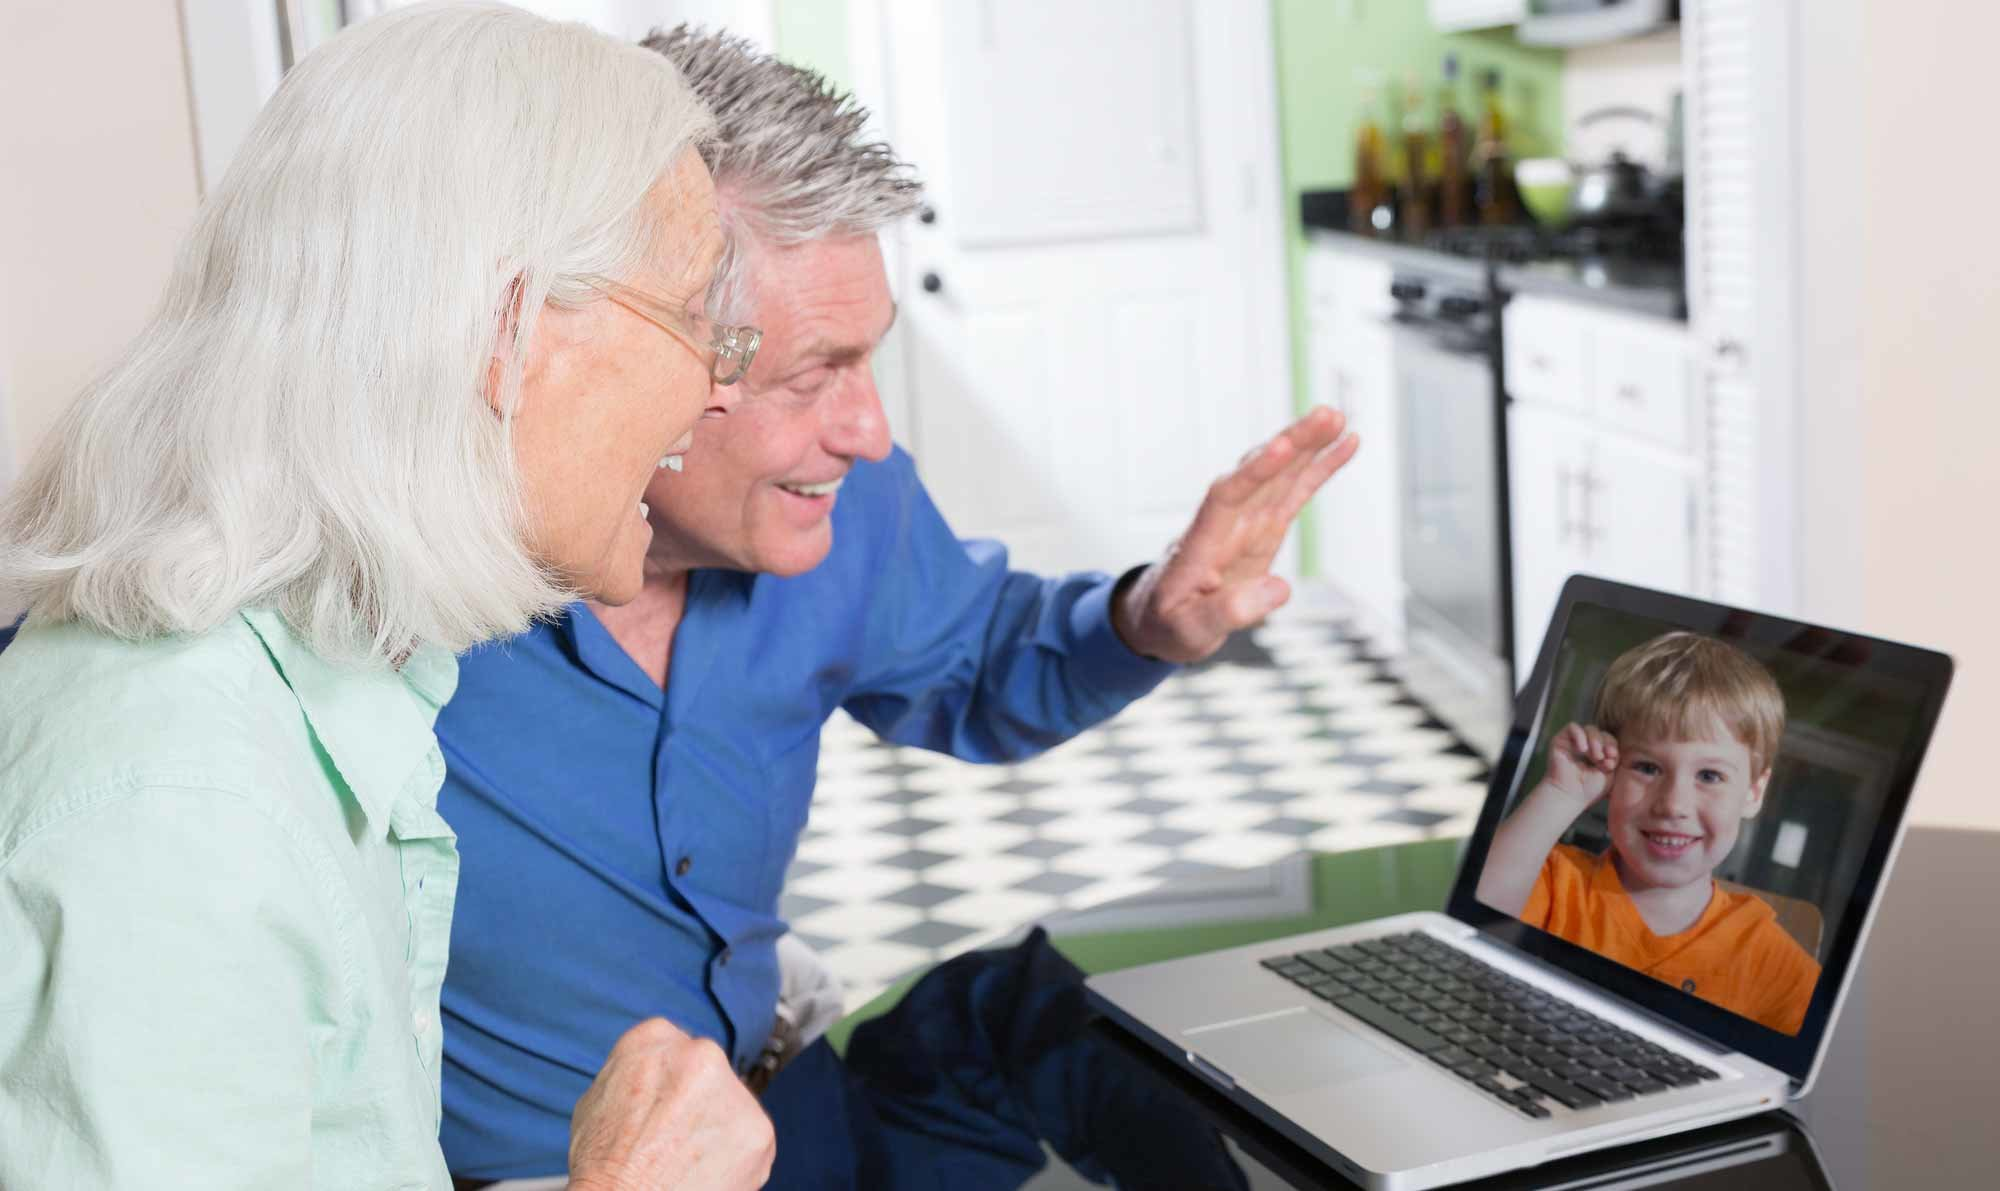 On a family call - time to get new hearing aids